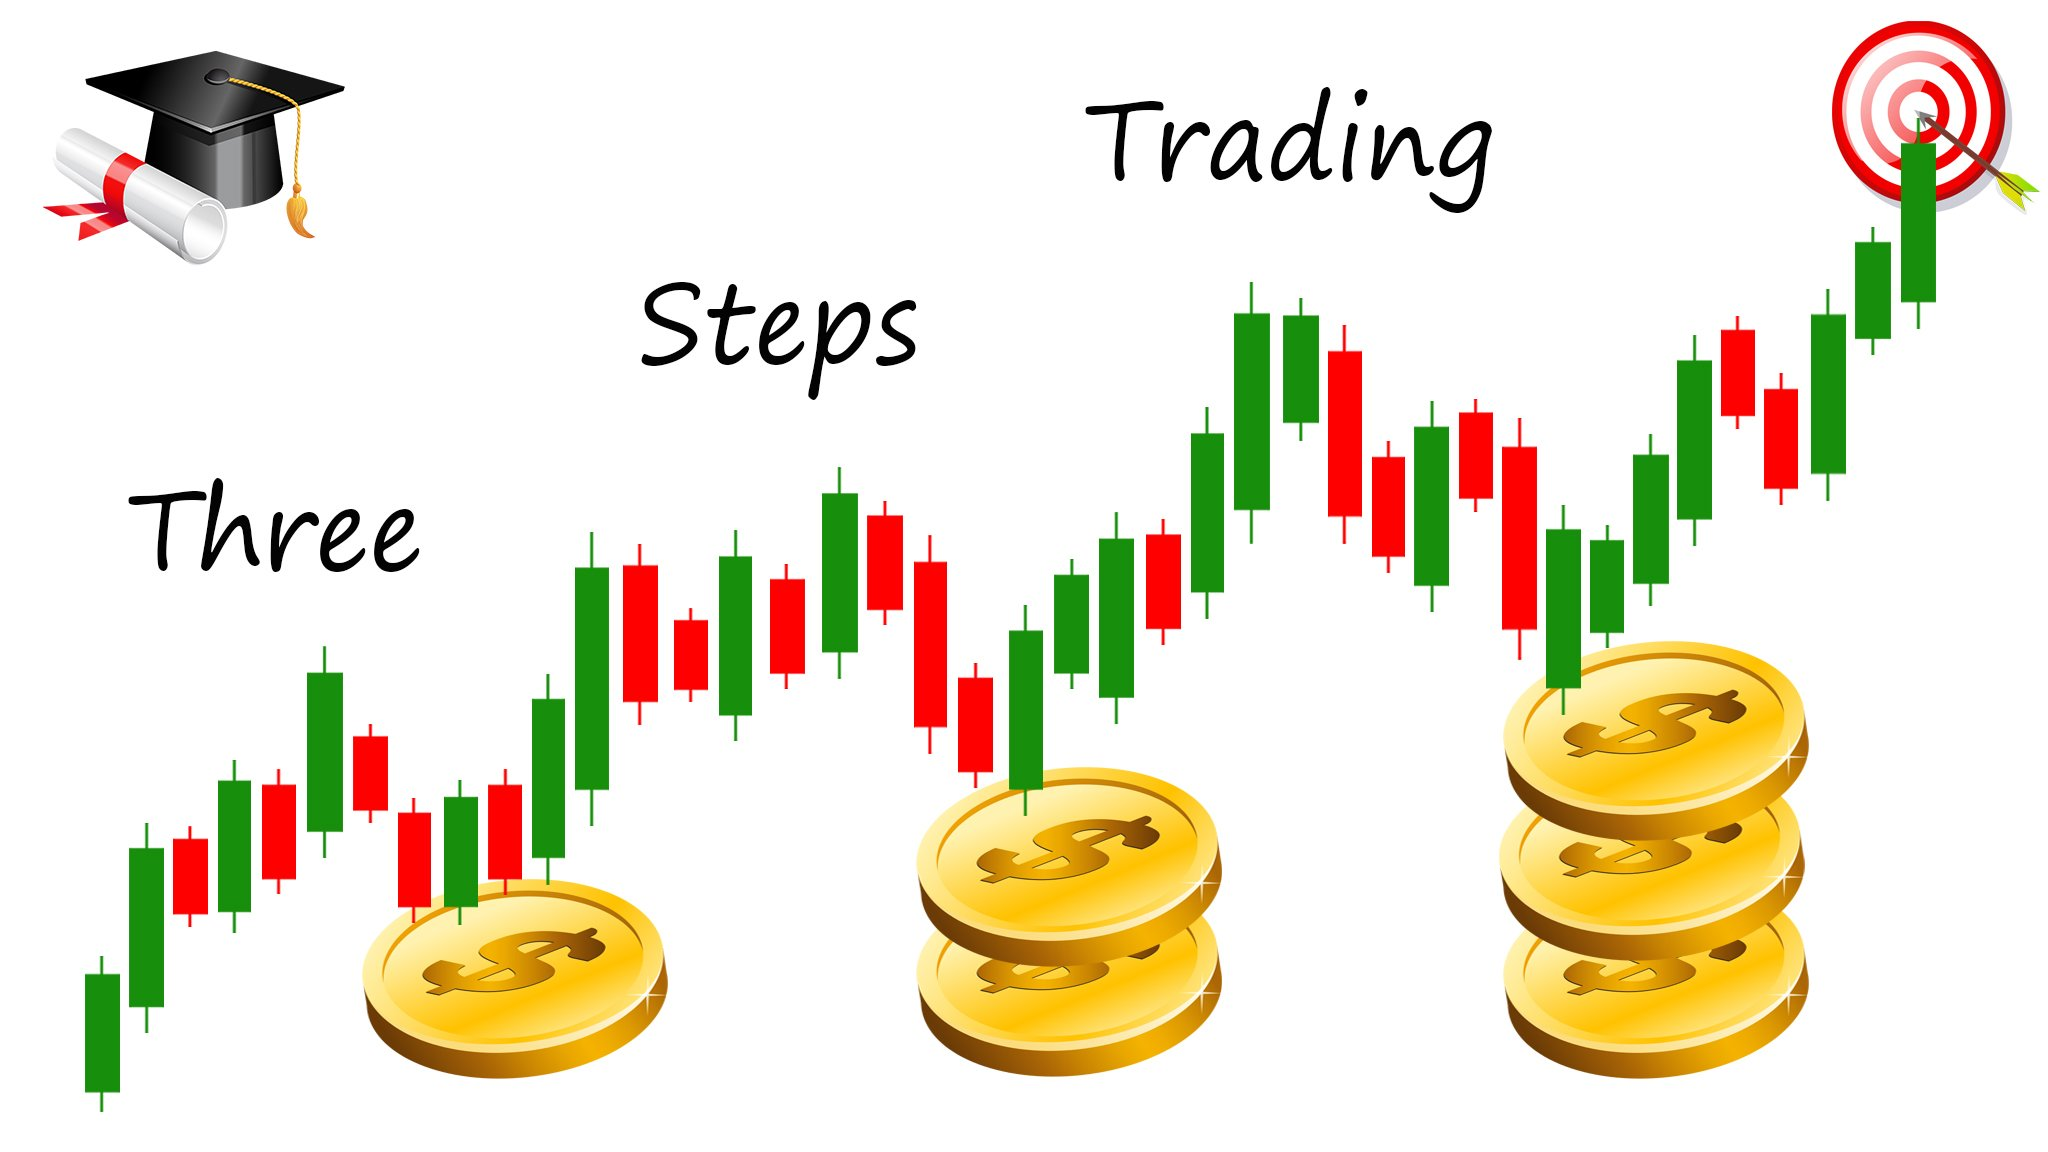 Forex - Live Trading with Real Money - Harmonic Patterns